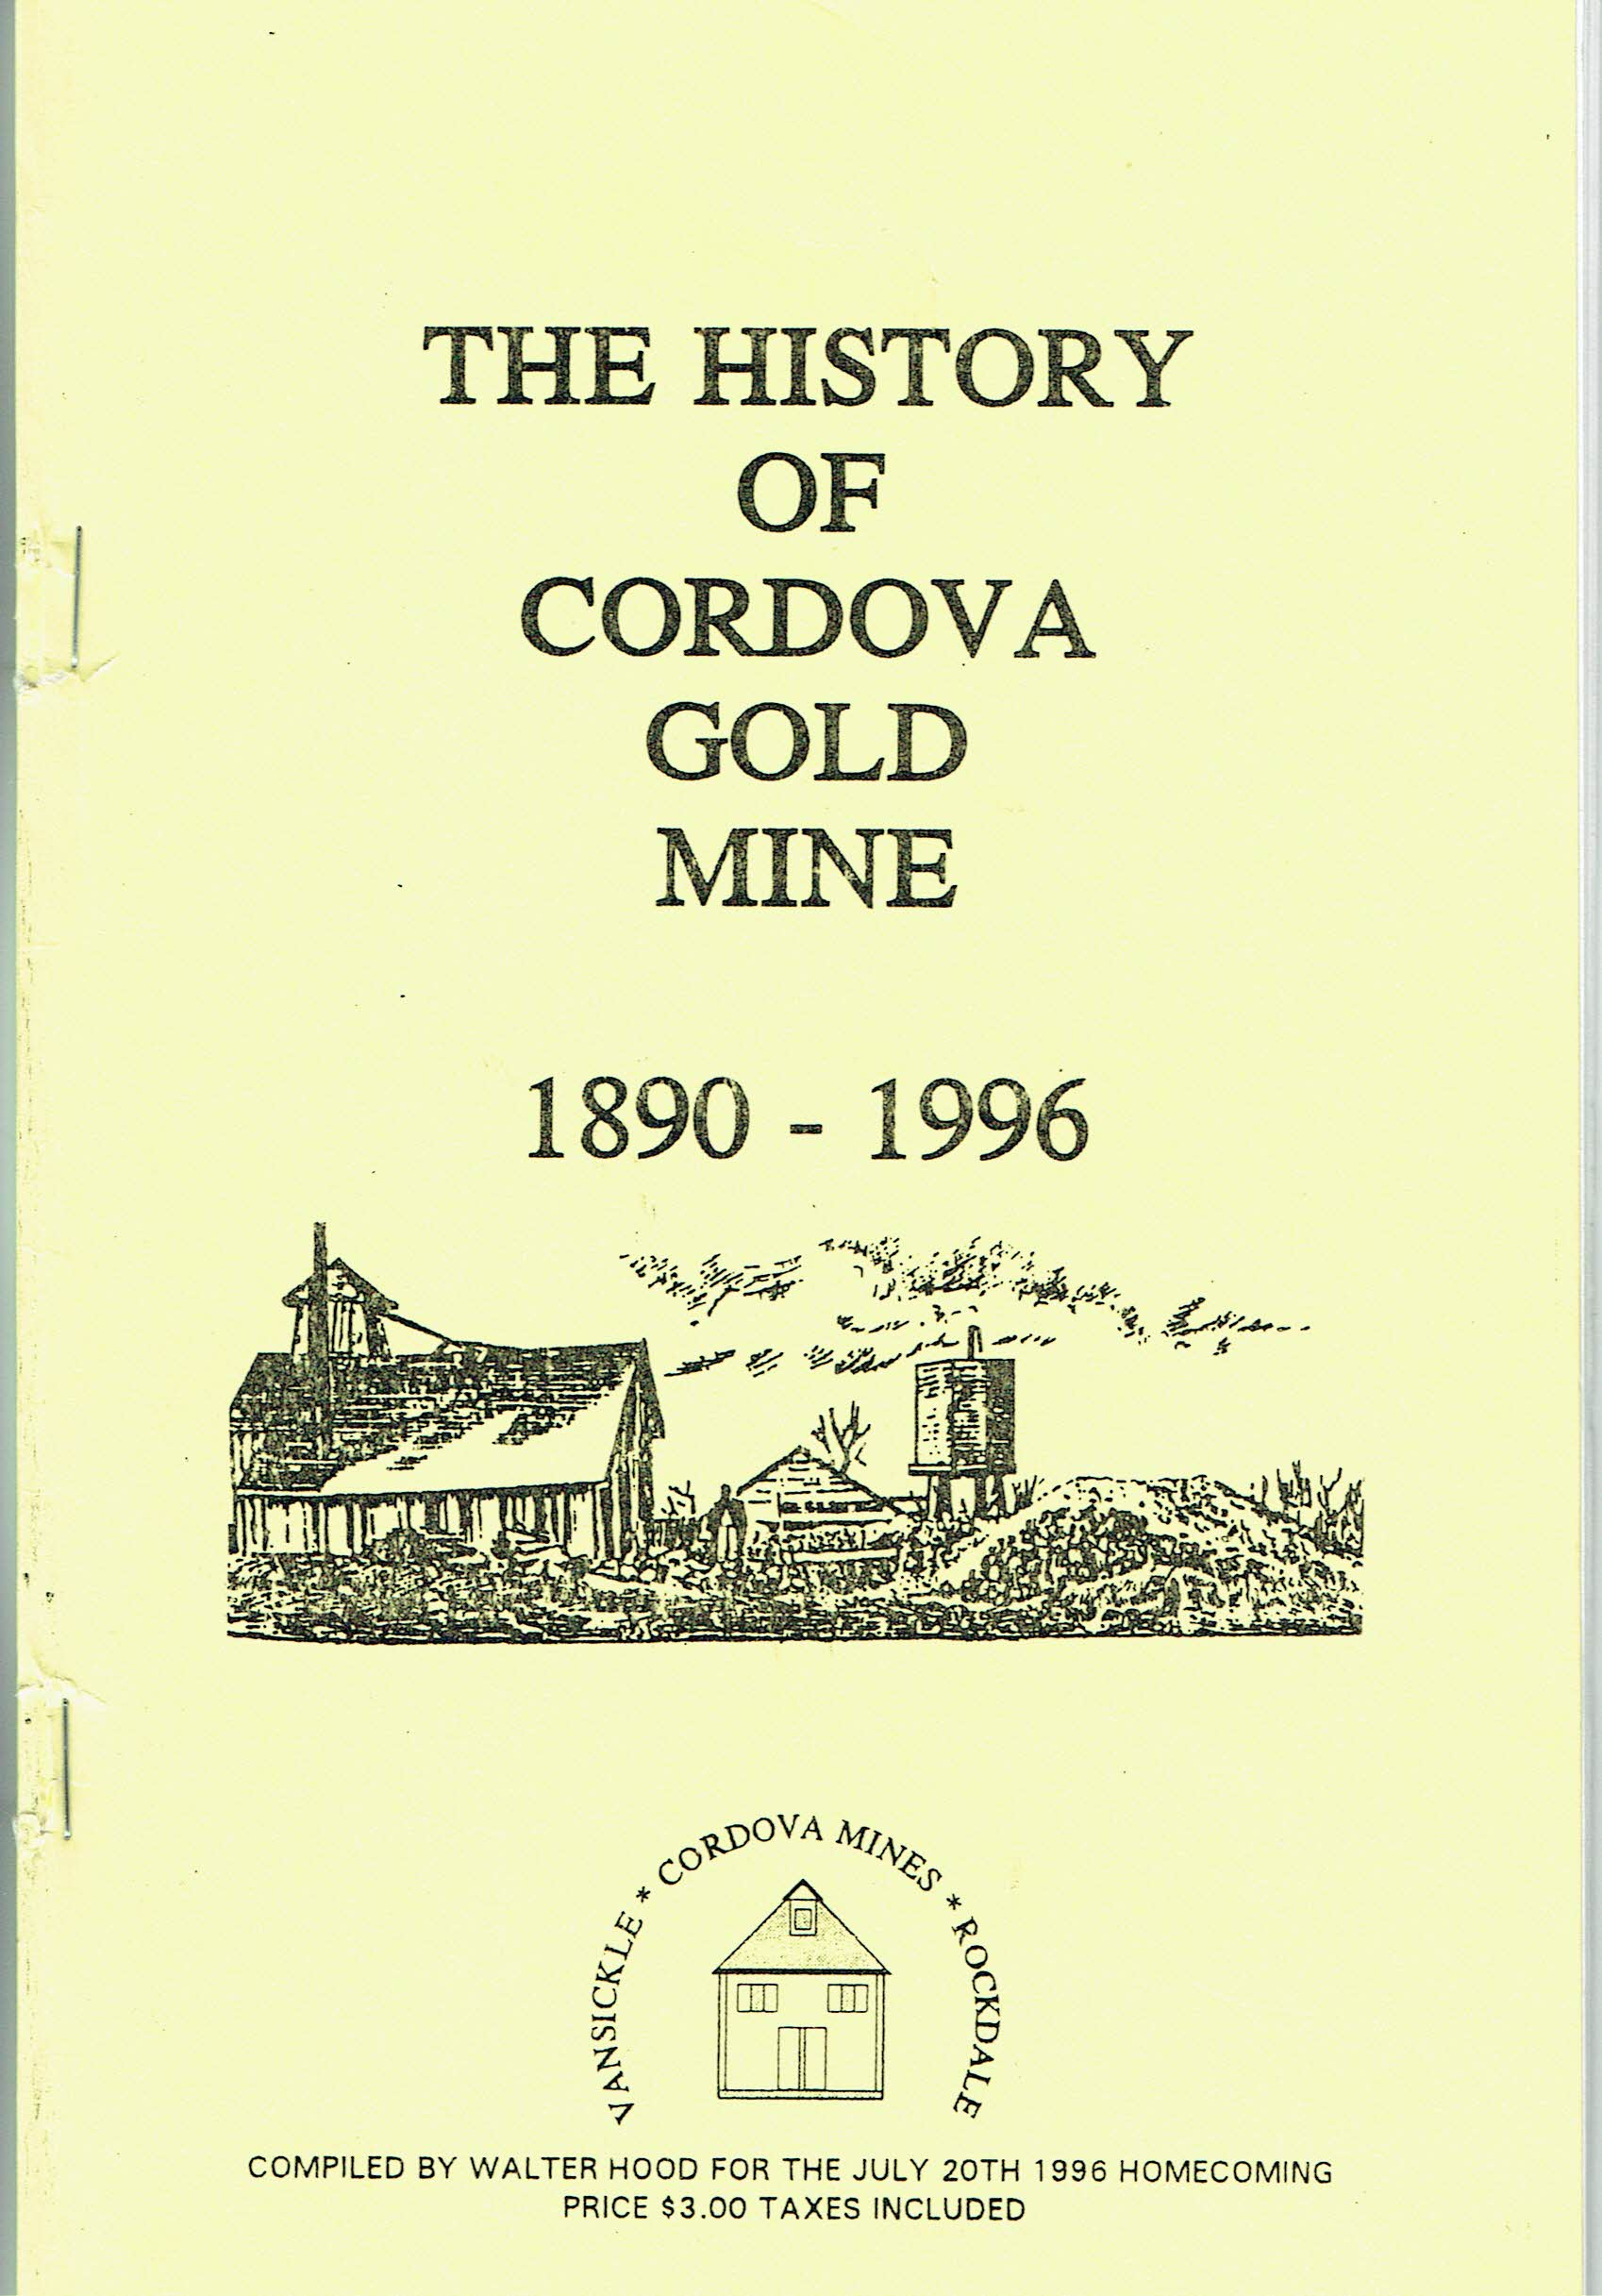 History of Cordova Gold Mines Cover.jpg